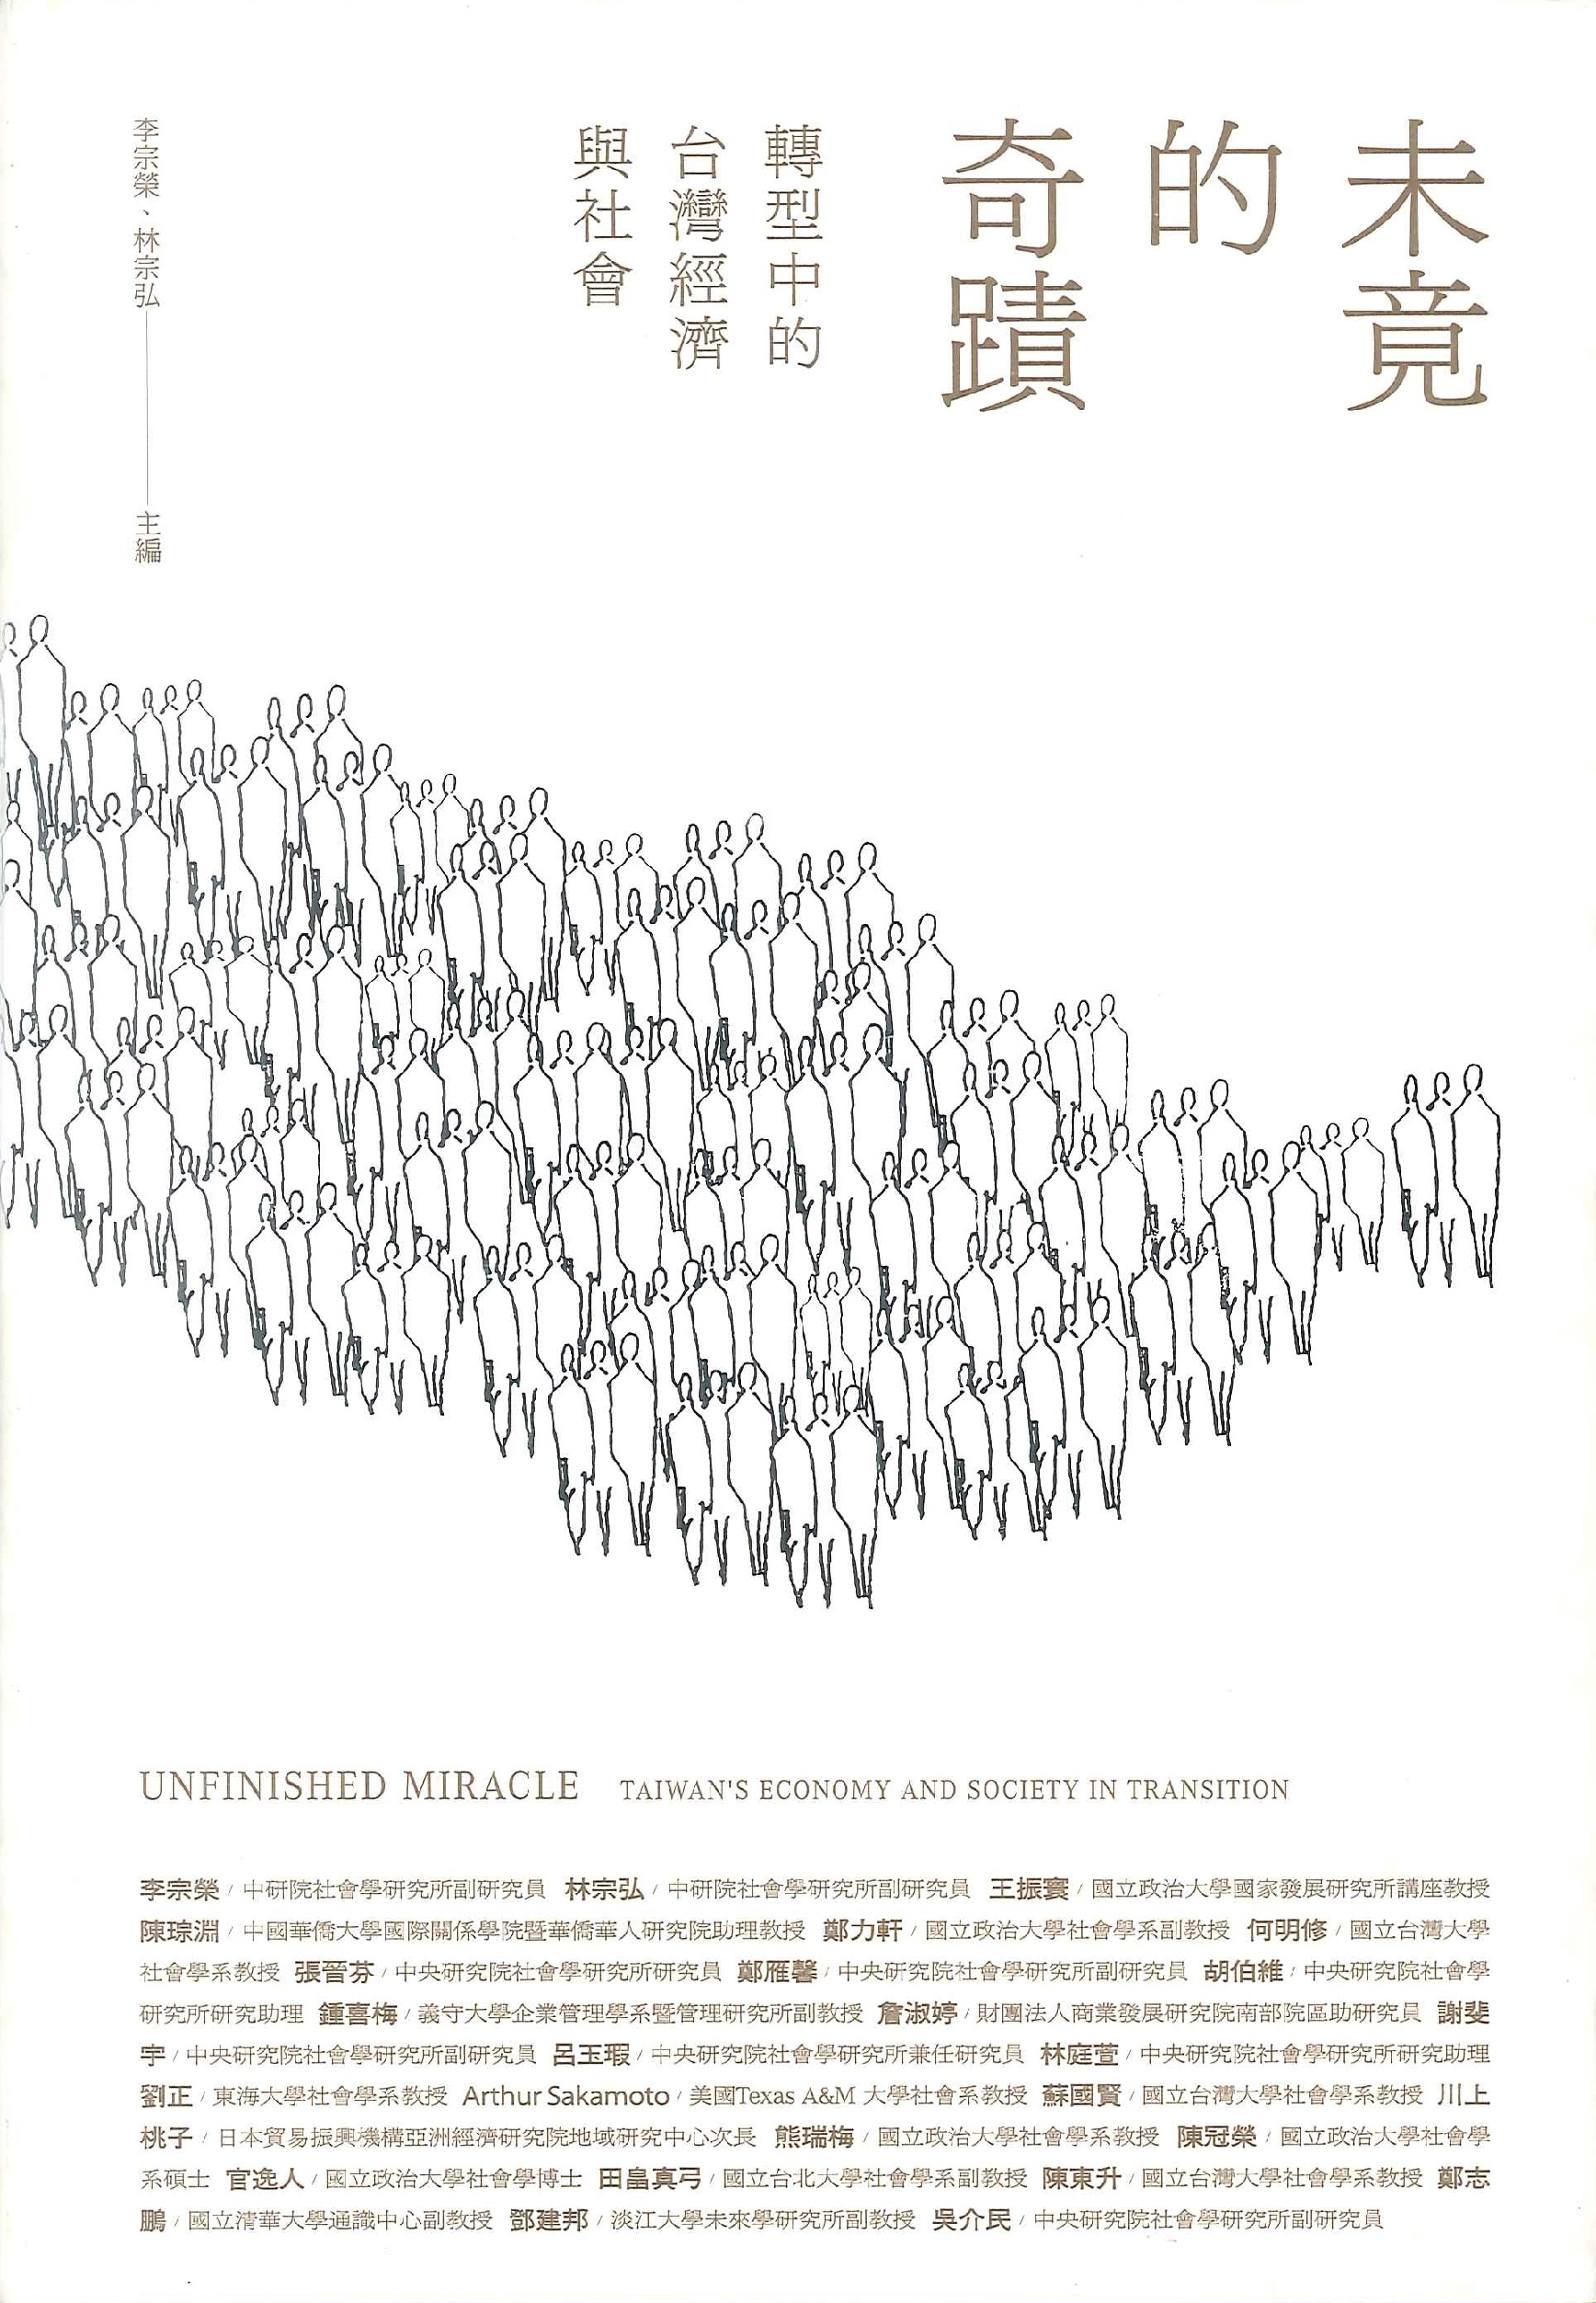 未竟的奇蹟:轉型中的台灣經濟與社會=Unfinished miracle: Taiwan's economy and society in transition